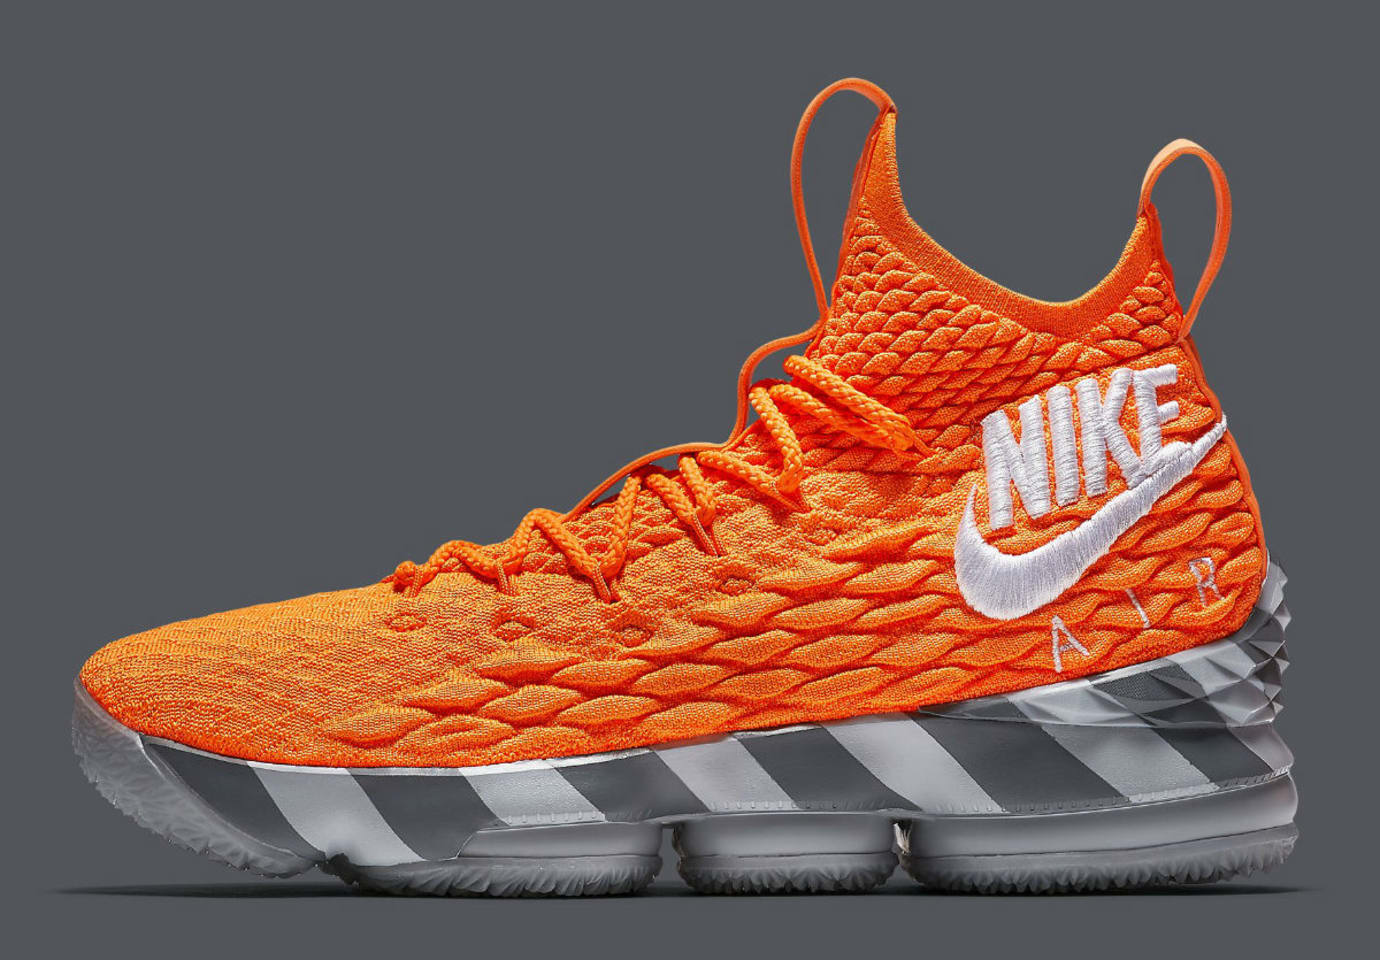 Nike LeBron 15 Orange Box Release Date AR5125-800 Profile c963efb4f